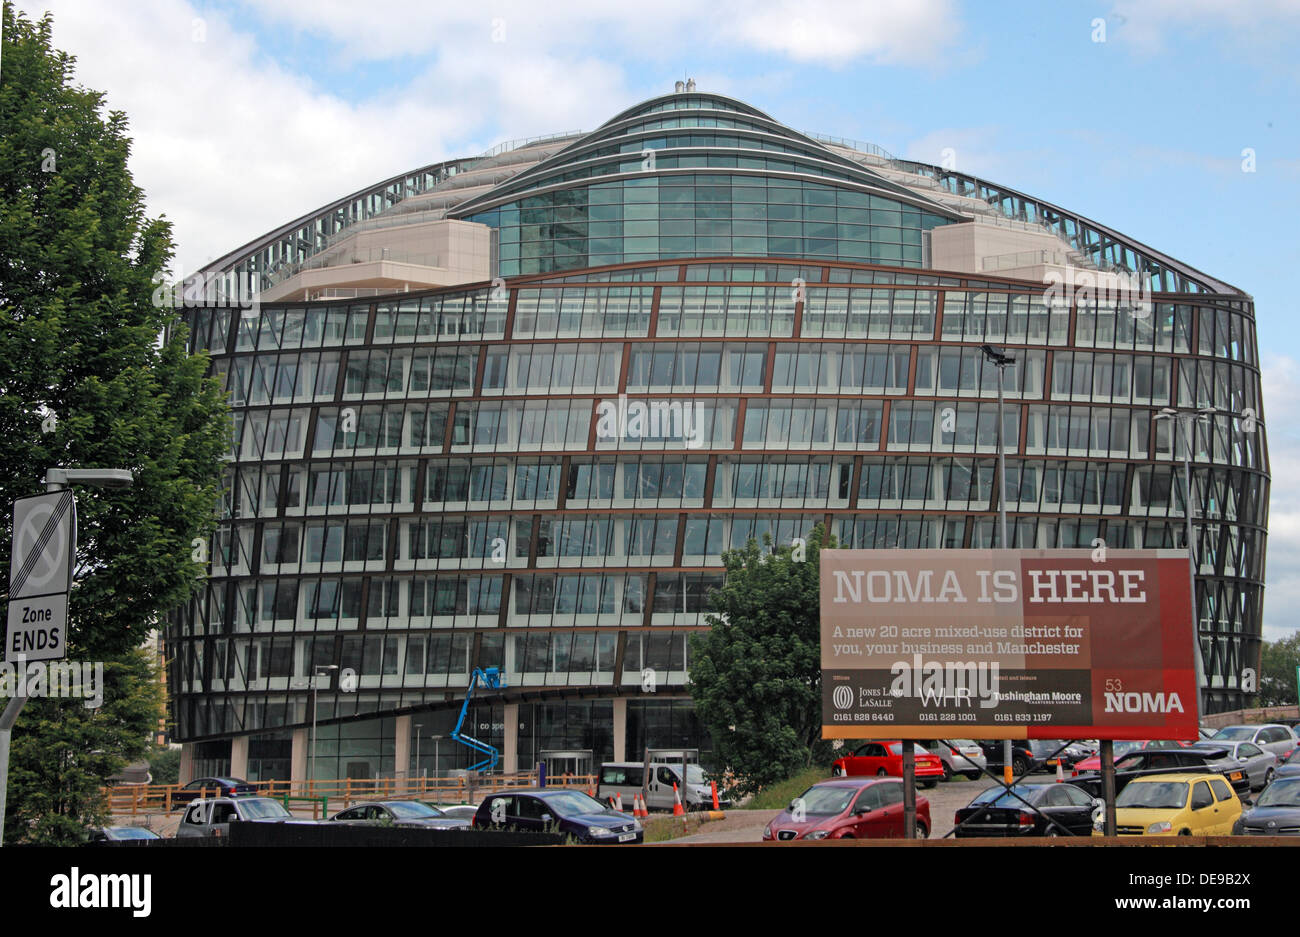 1 Angel Square, Co-operative Society Headquarters, Miller Street, Manchester,England,UK - Stock Image